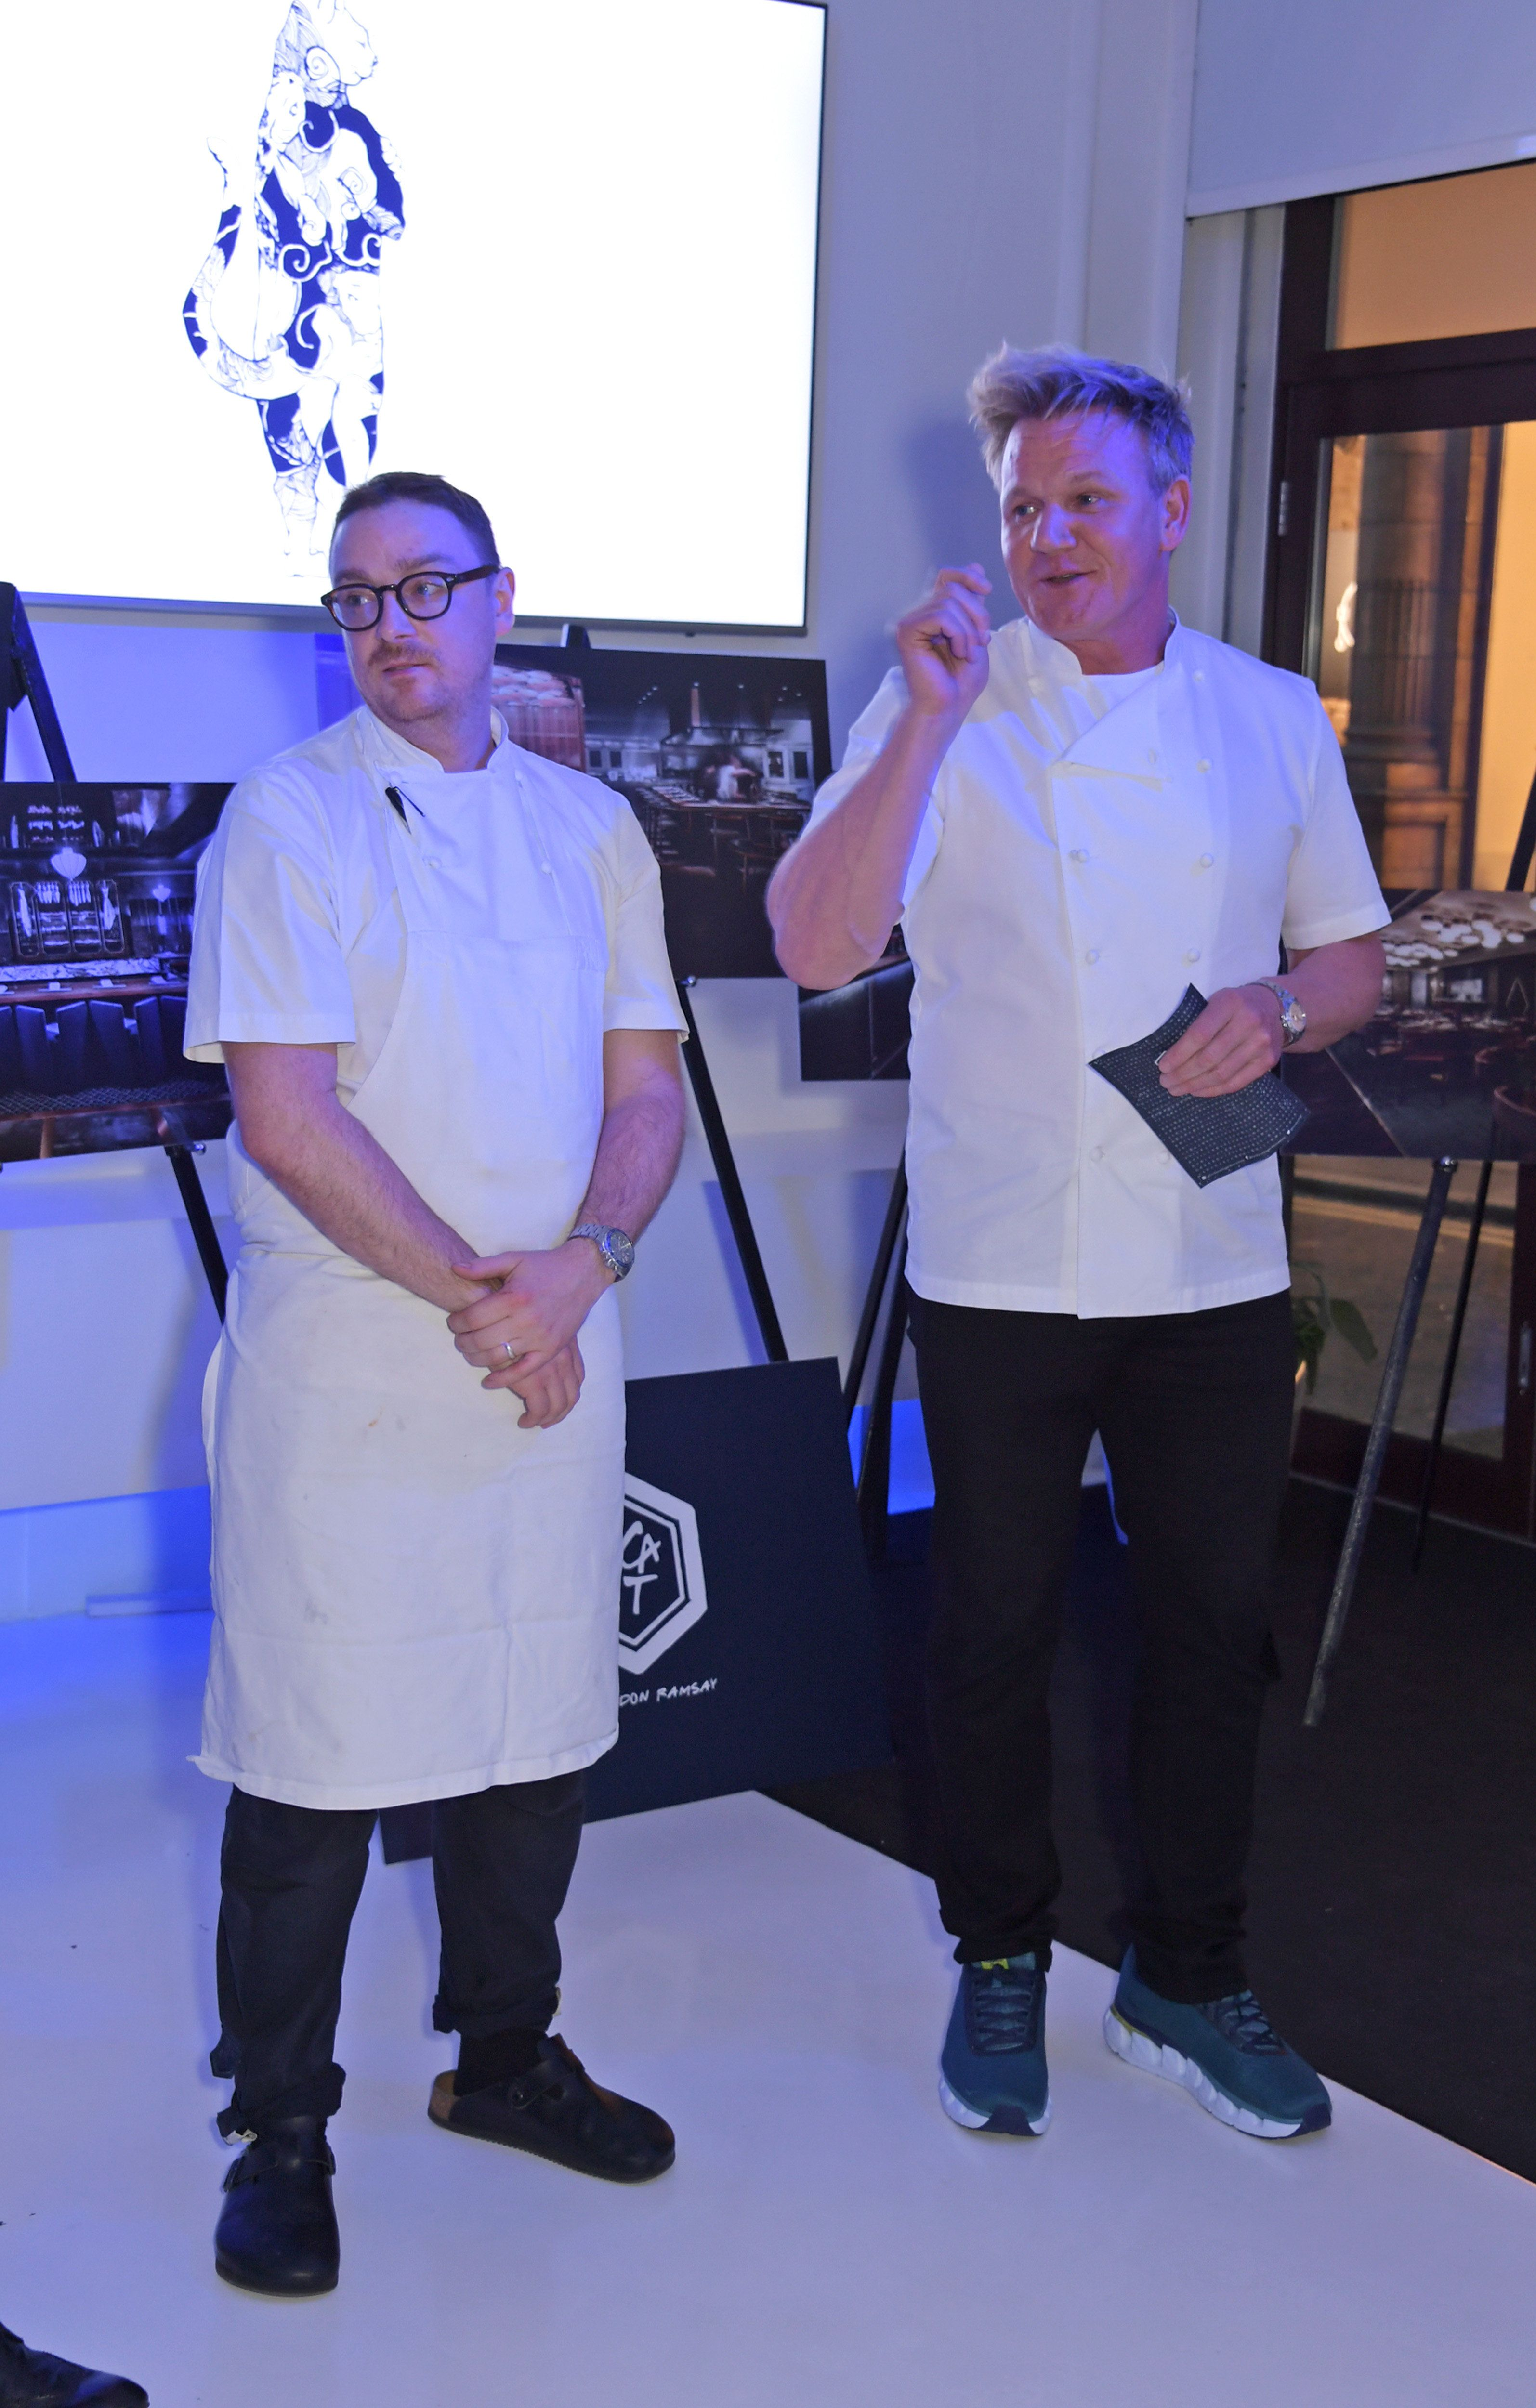 LONDON, ENGLAND - APRIL 10:  Gordon Ramsay (R) speaks at an intimate dinner hosted by Gordon Ramsay to preview his highly-anticipated new Mayfair restaurant Lucky Cat, opening this summer, on April 10, 2019 in London, England.  (Photo by David M. Benett/Dave Benett/Getty Images for Gordon Ramsay Restaurants)